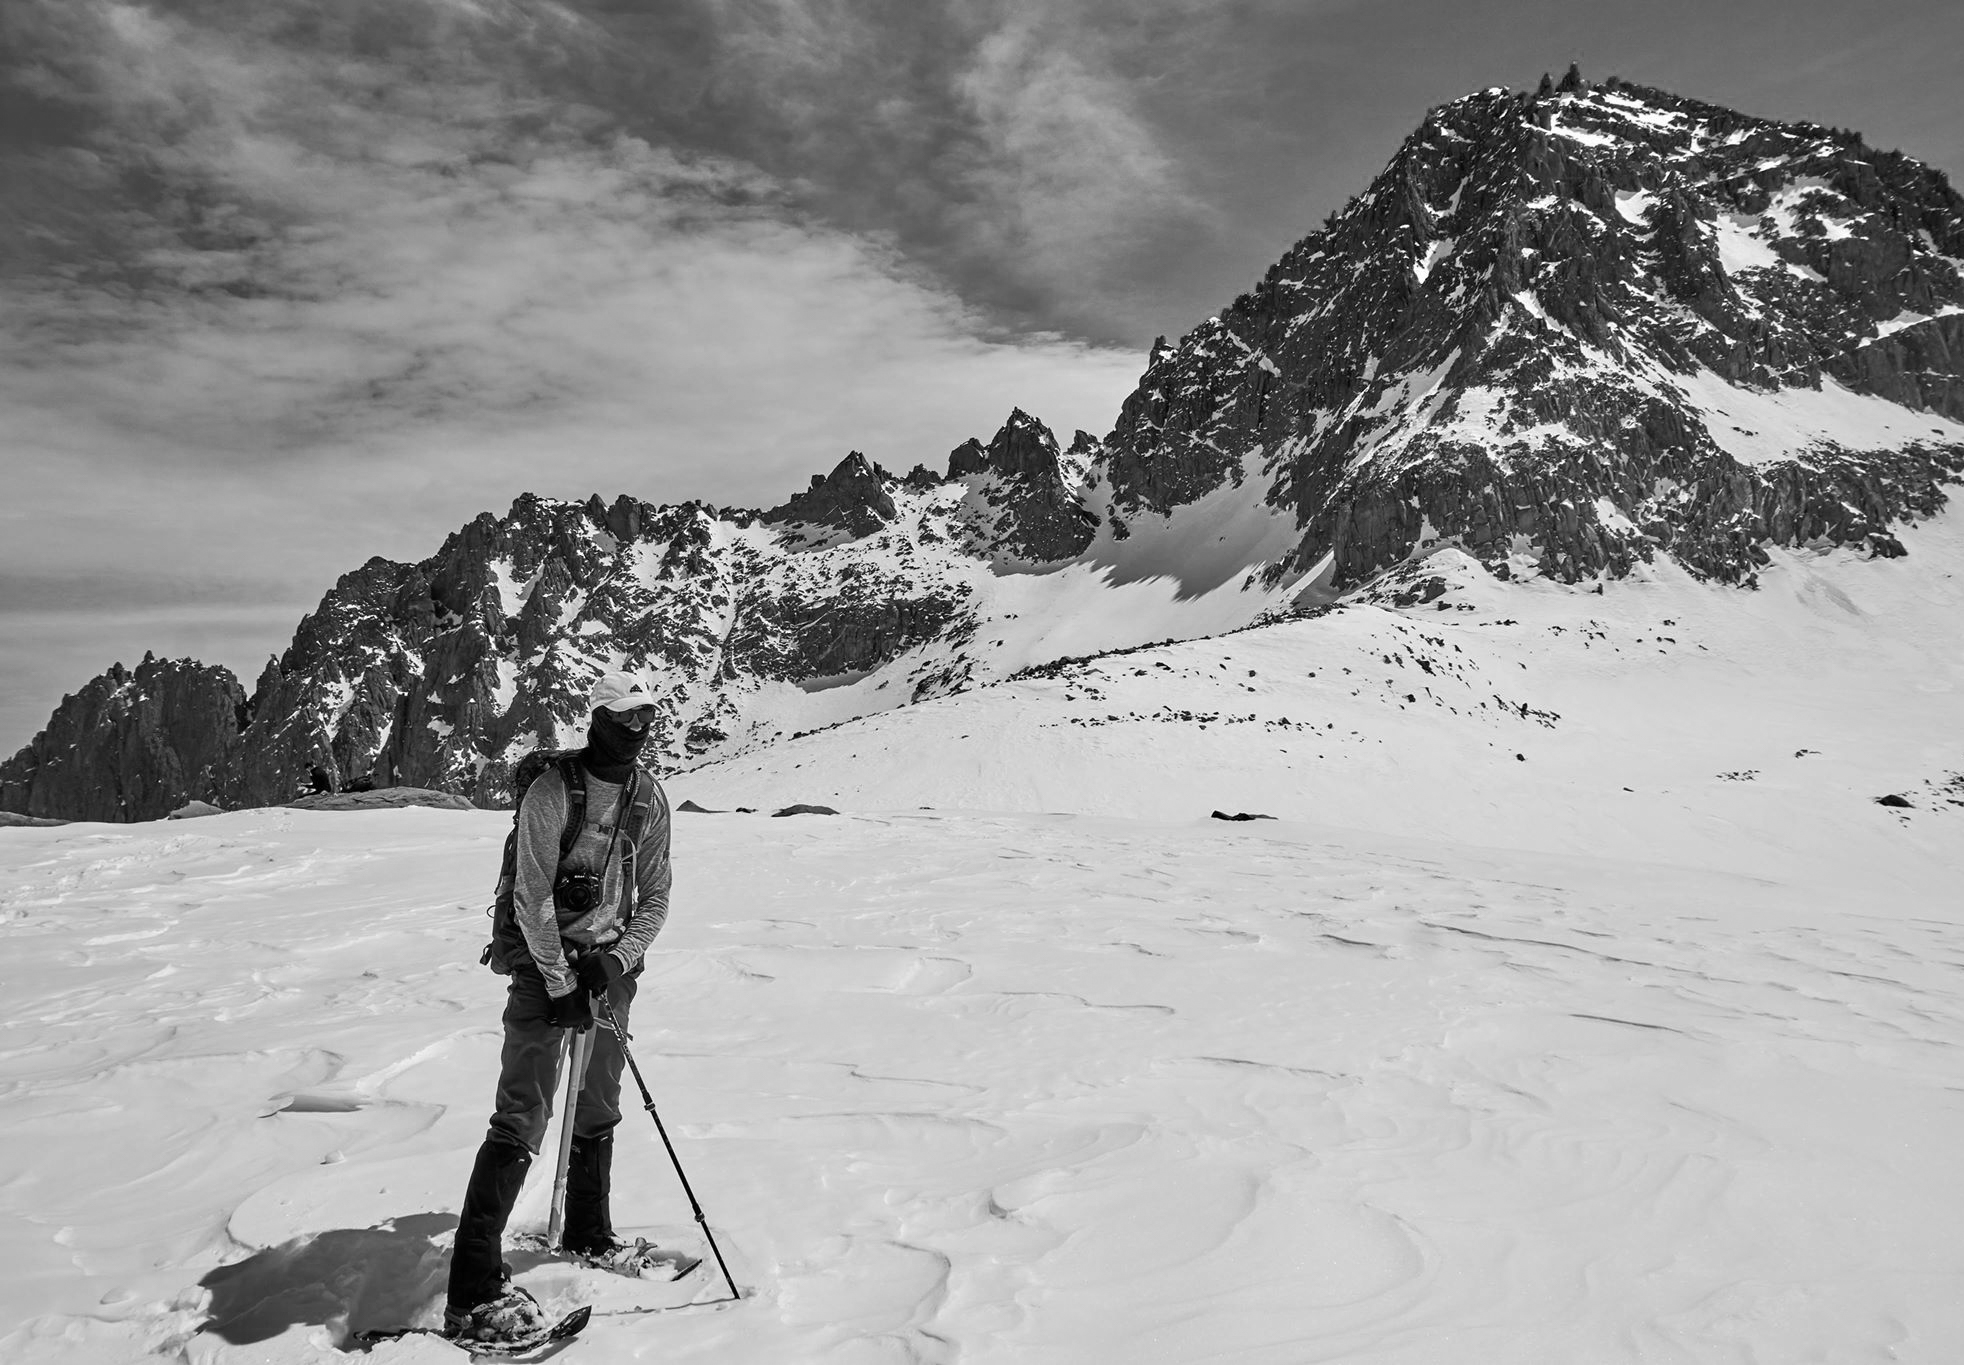 Davies' Perspective - Sitting down with mountaineer and photographer John Davies